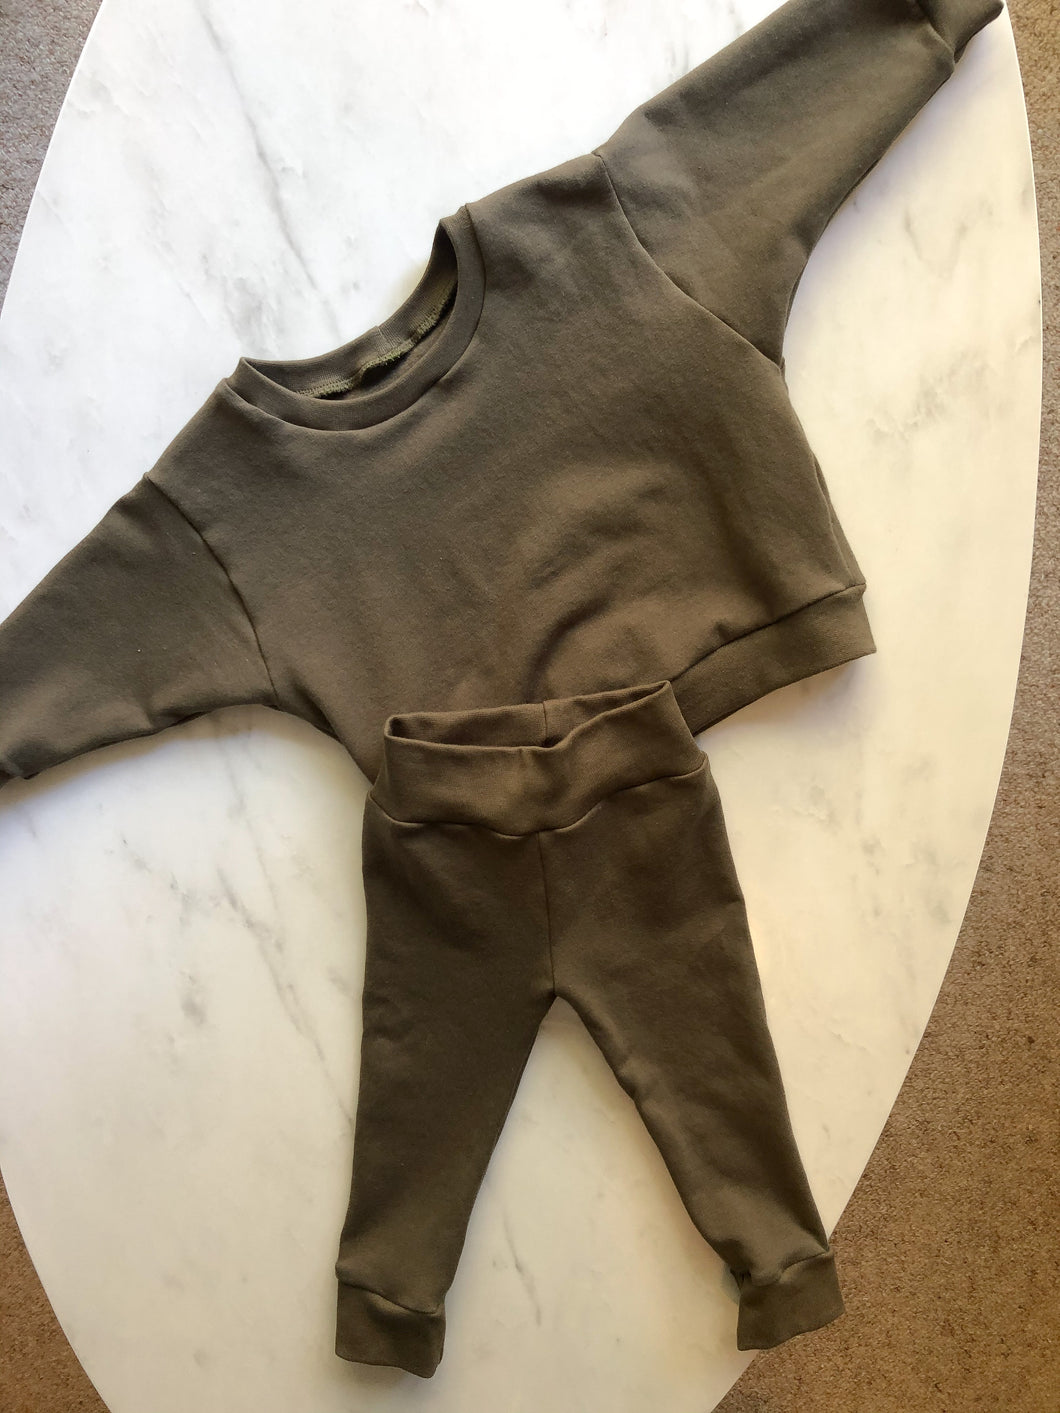 The Olive Green tracksuit